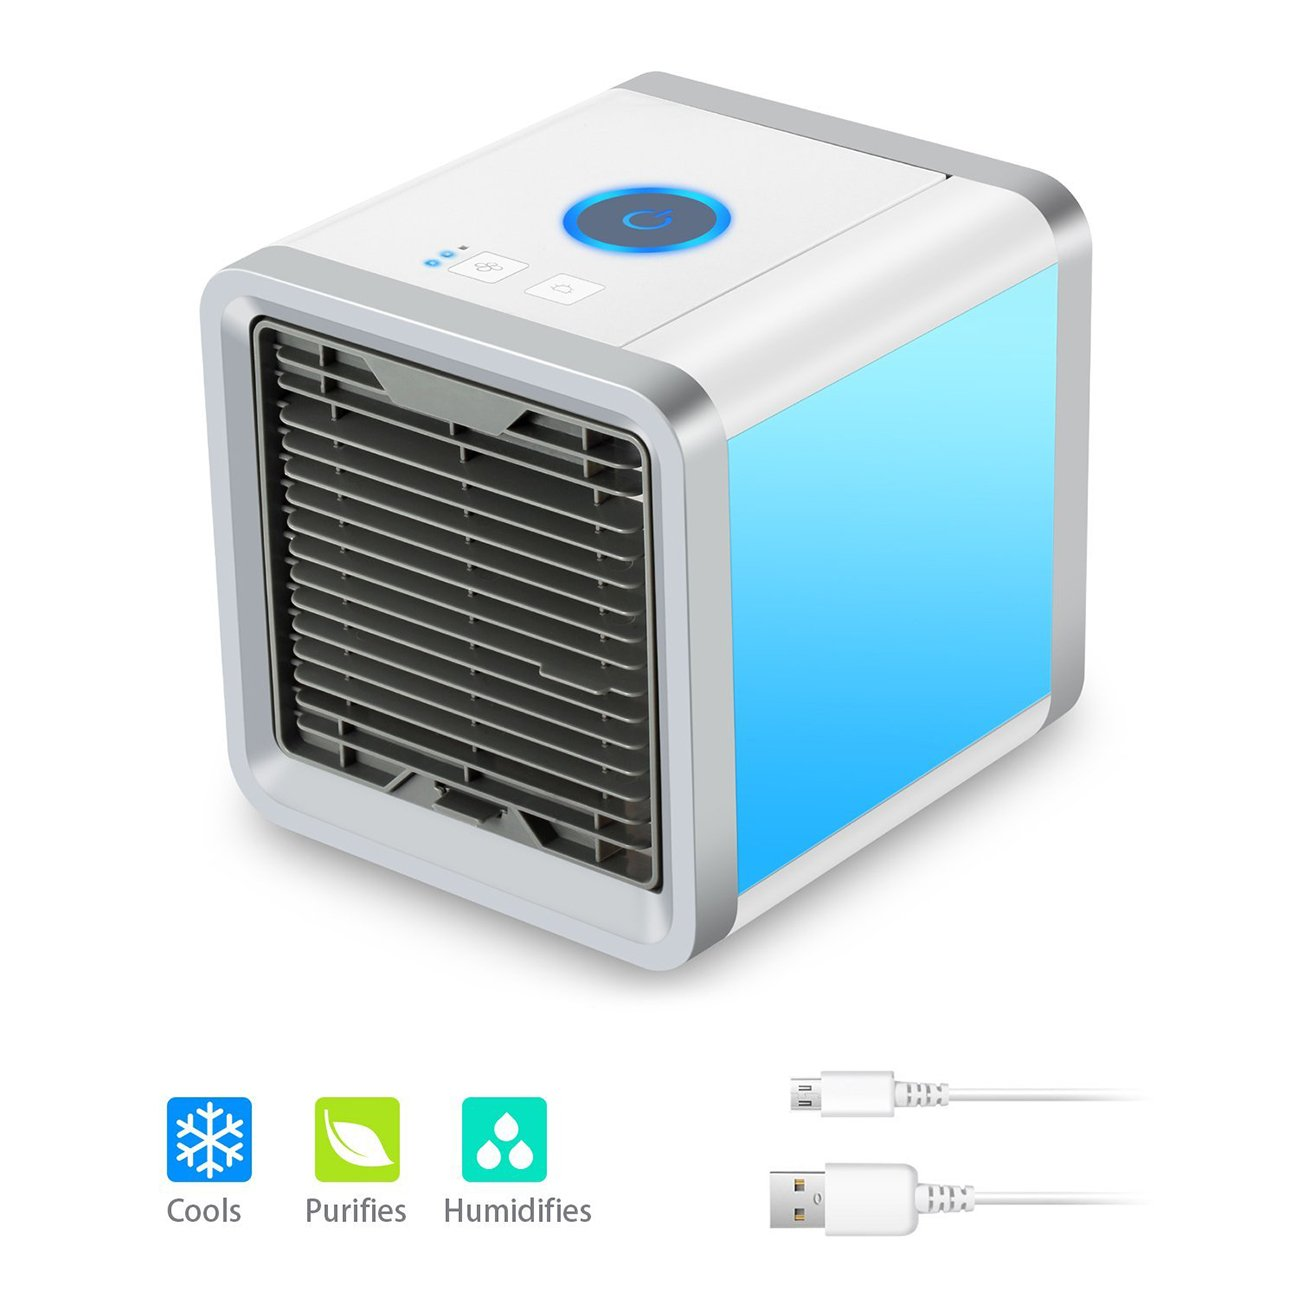 Quner Mini Air Conditioner with USB Portable Air Cooler Mobile Cooling Unit Air Cooler with water cooling for Office Table Car Bedroom Kids Room (3 Wind Speed - 7 Mood Lights)